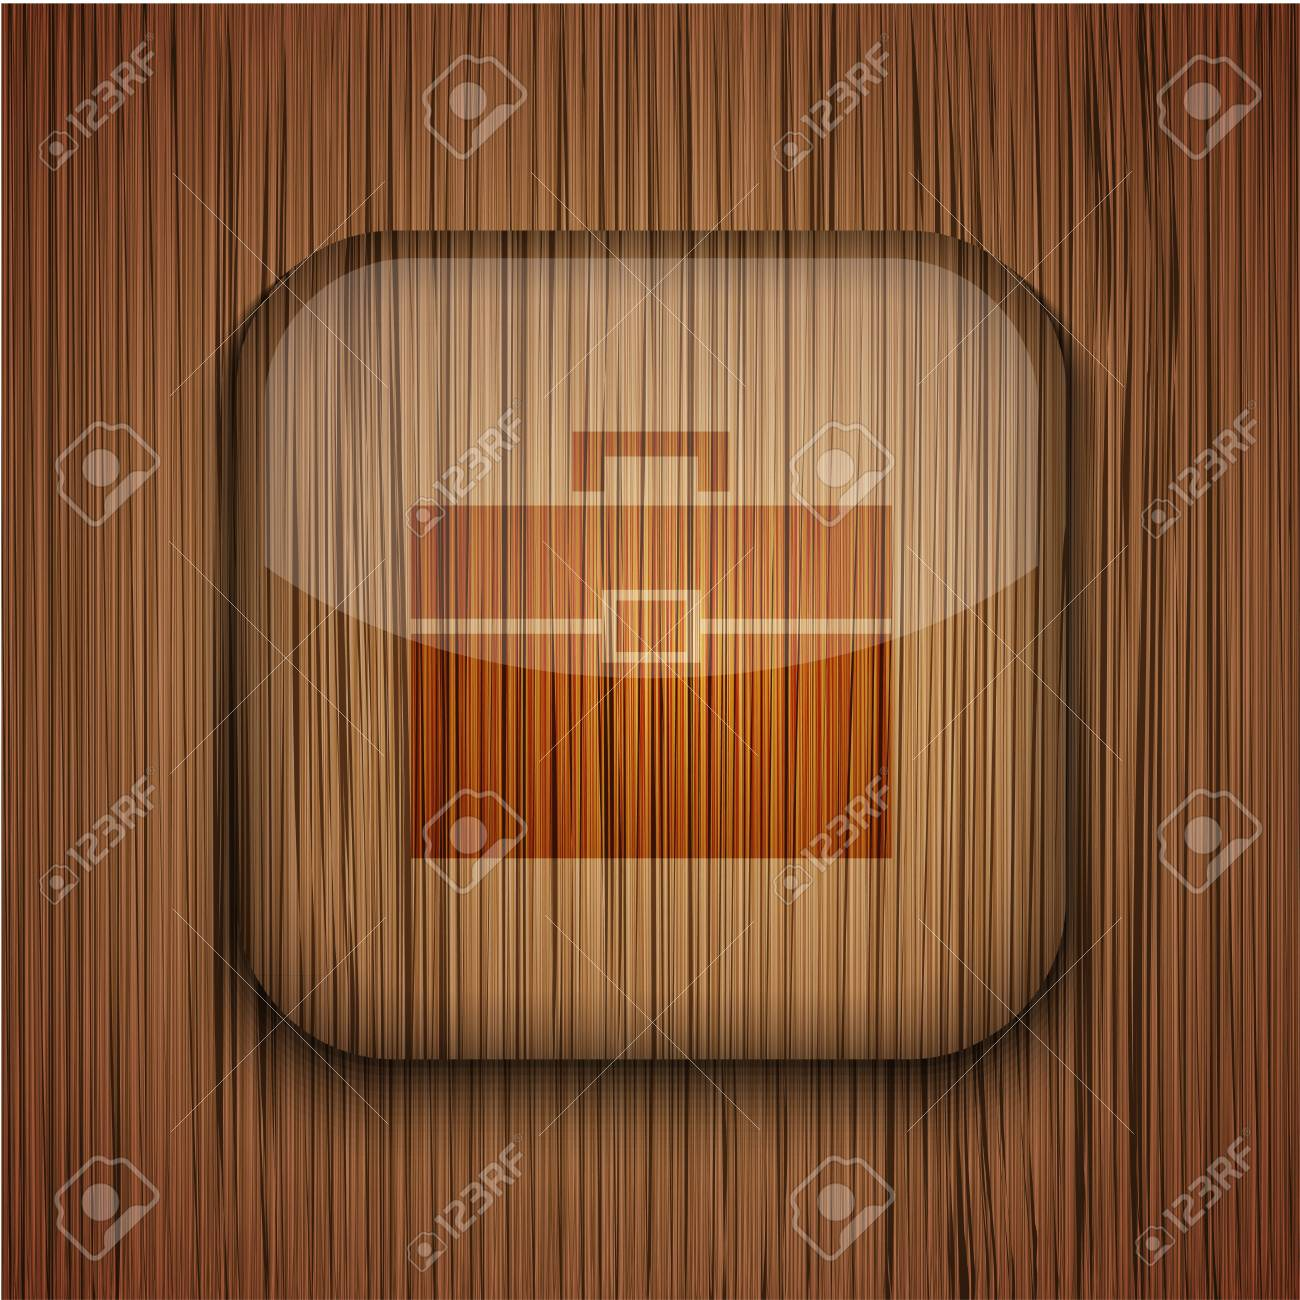 wooden app icon on wooden background. Stock Vector - 17660534